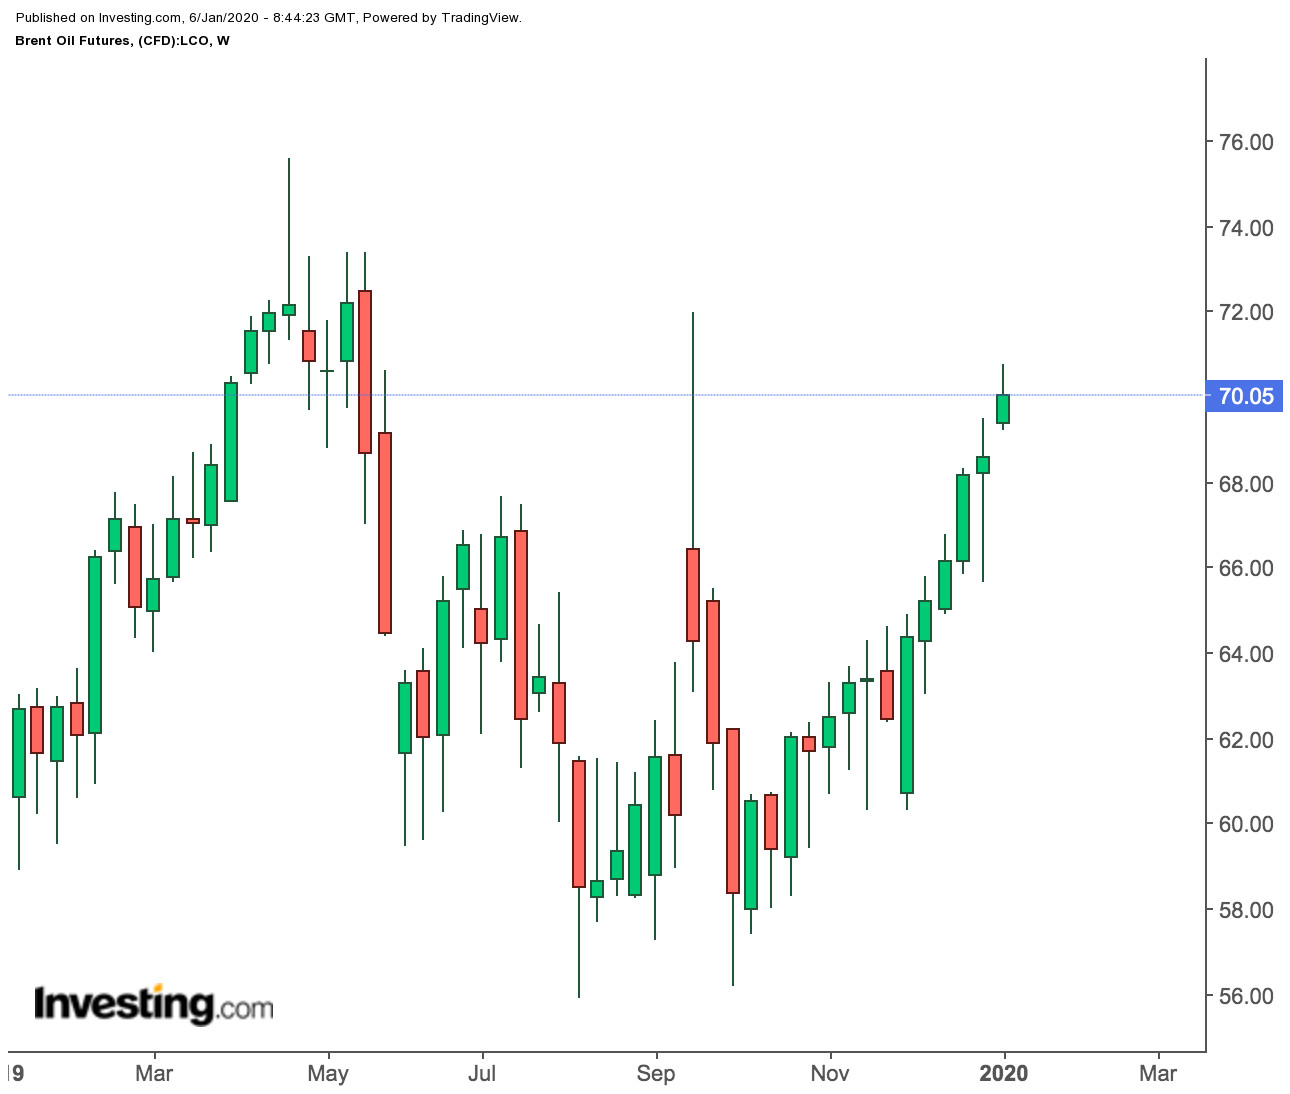 Brent Futures Weekly Price Chart